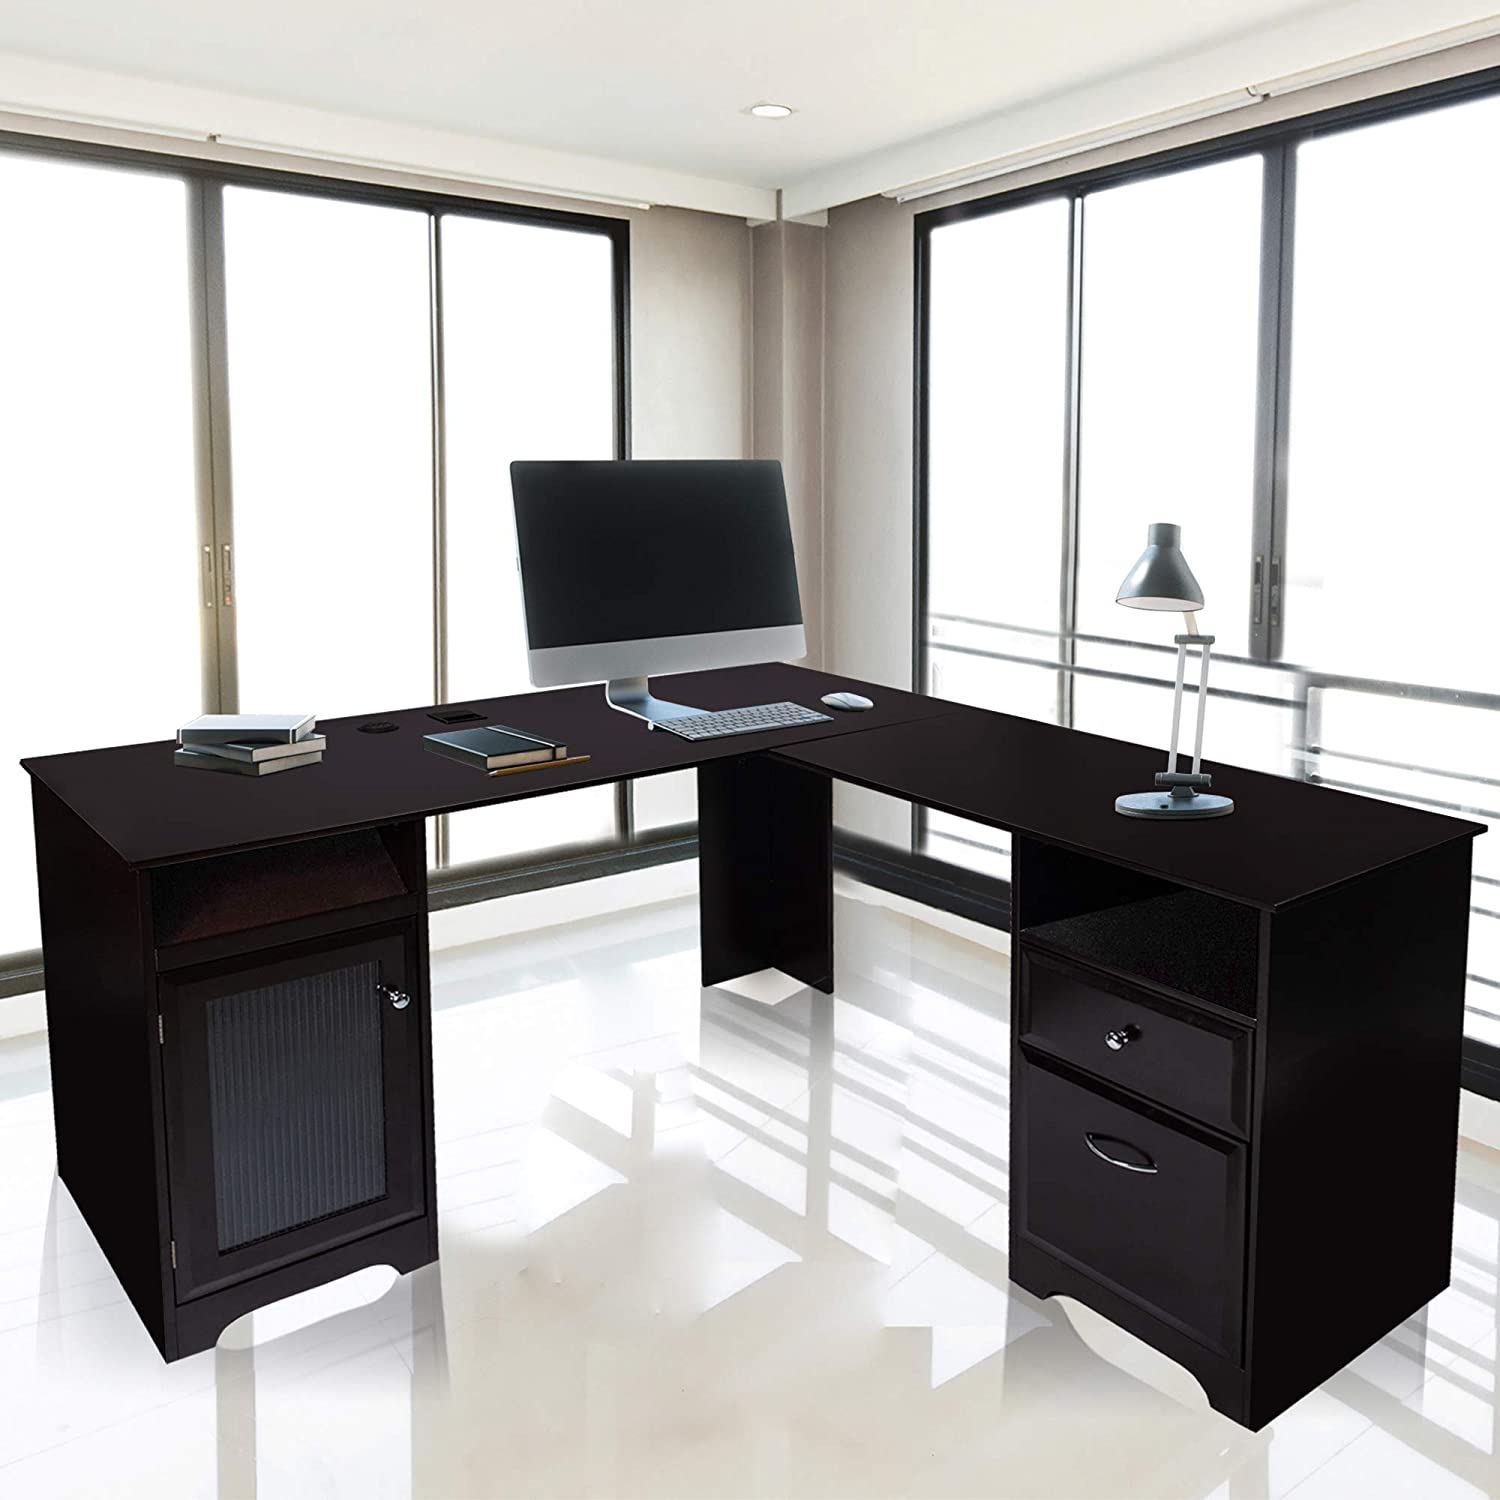 GOOD & GRACIOUS L-shaped desk, Home Office Corner Computer Desk, Modern Study Desk Writing Workstation with Drawers and Storage, Dark Brown